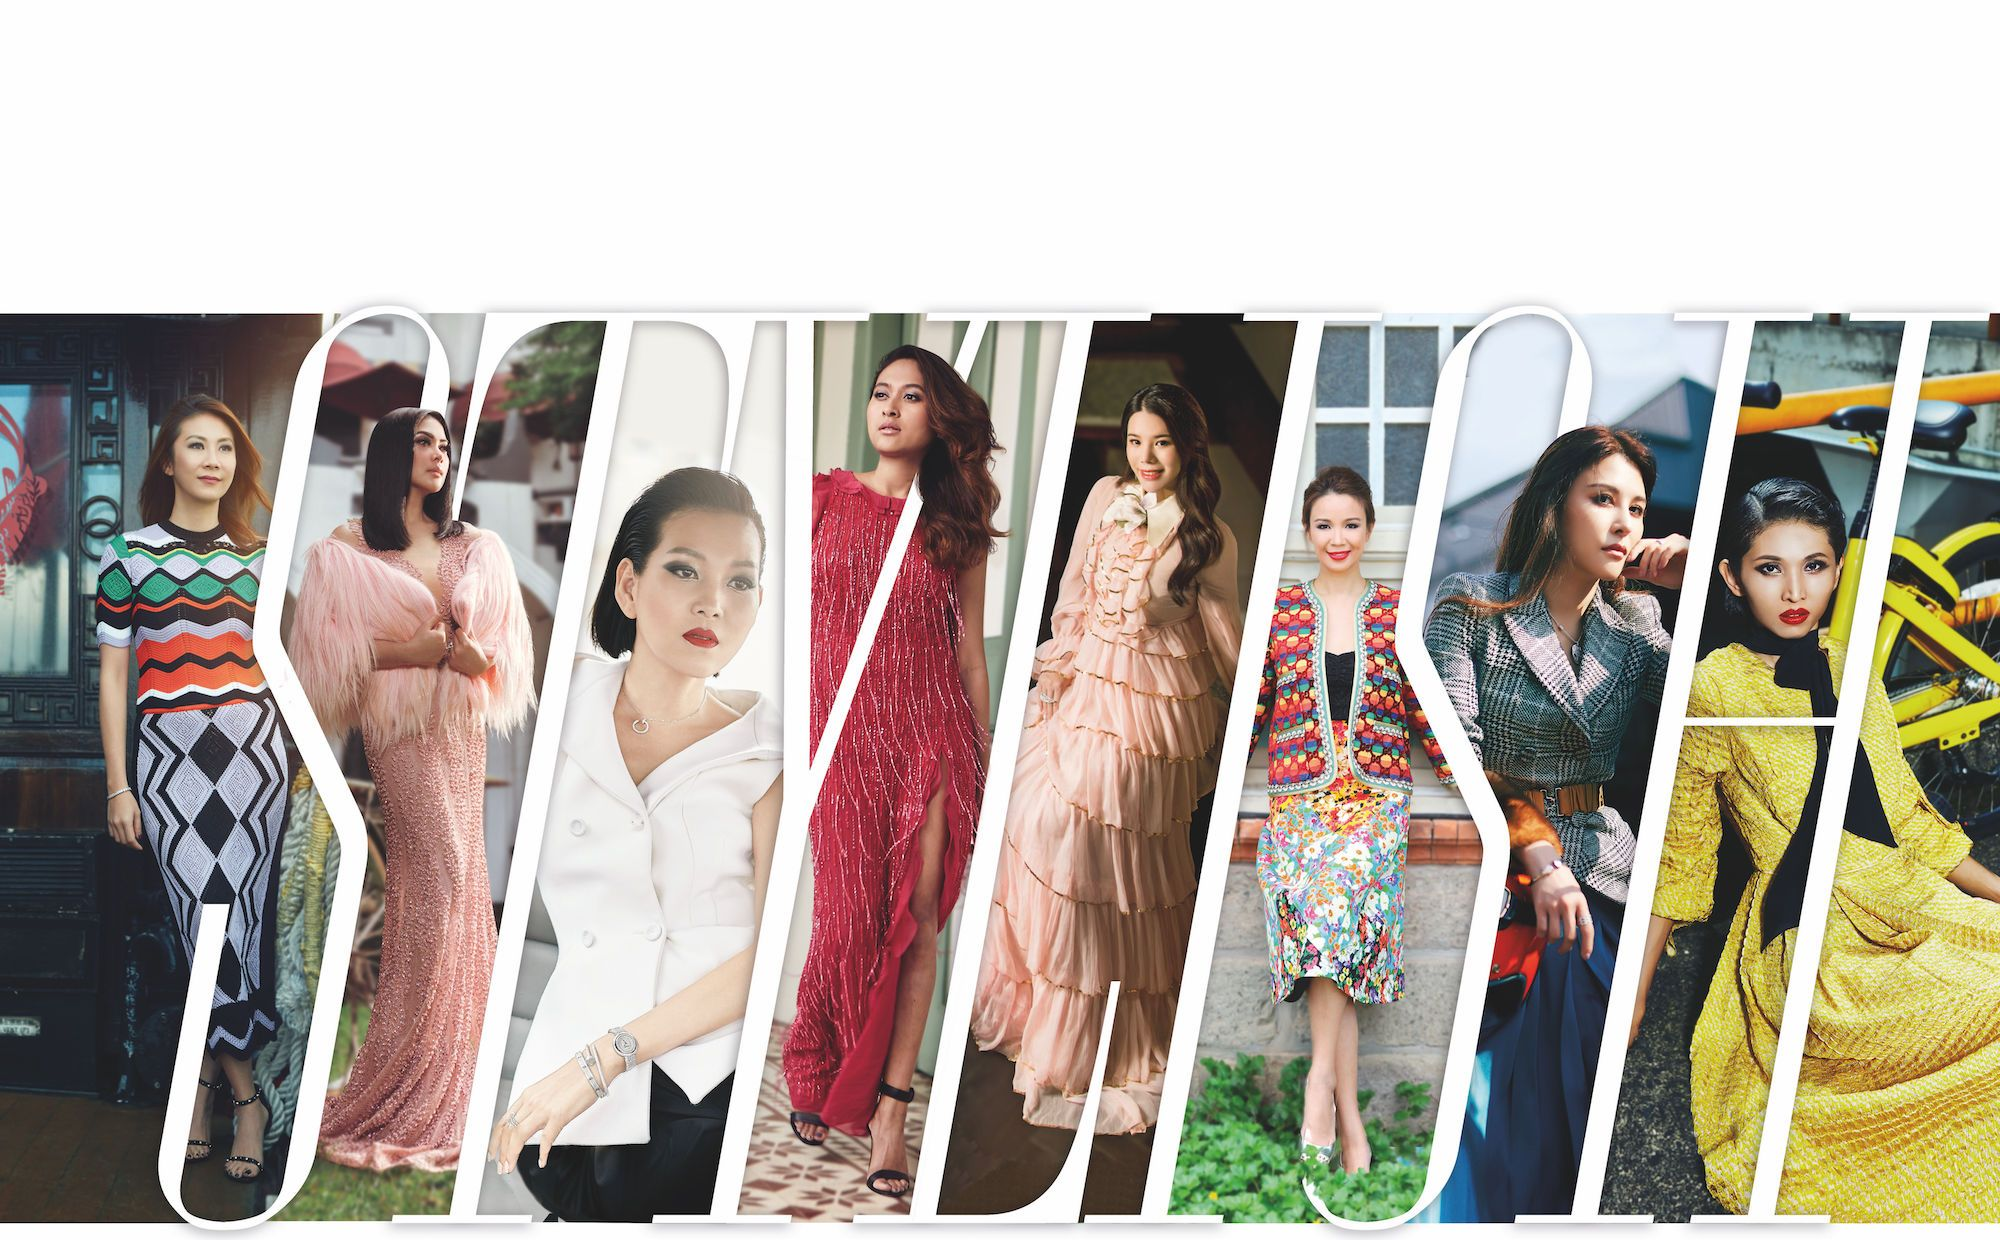 Asia's Most Stylish: The Top 8 Female Fashion Icons